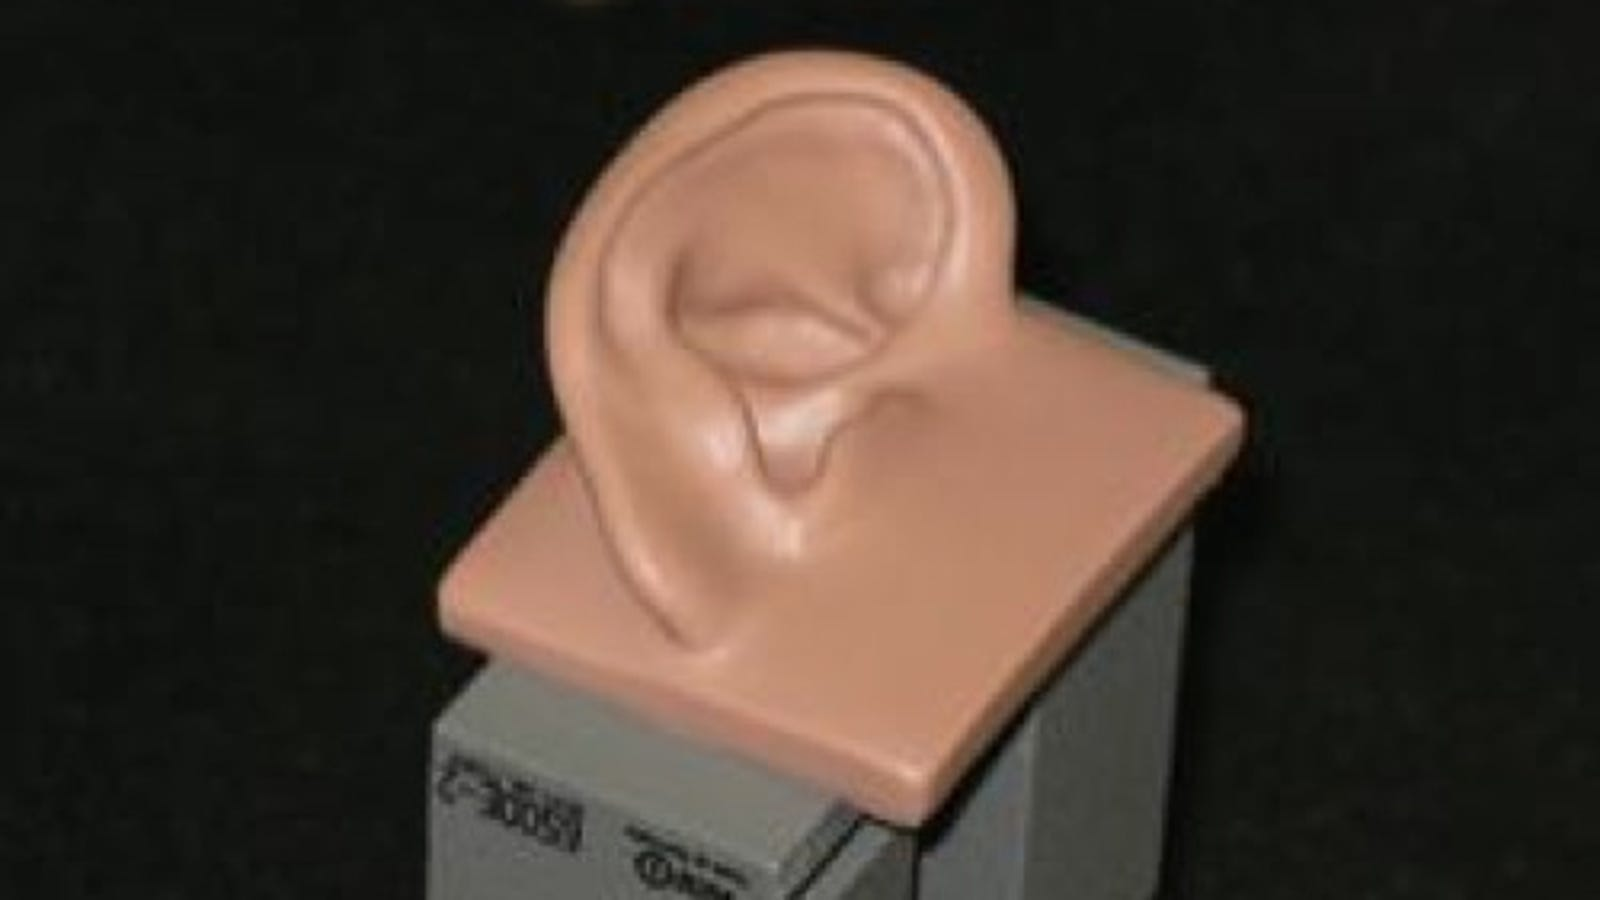 Researchers Claim They've Created the Perfect 3D Human Ear Model